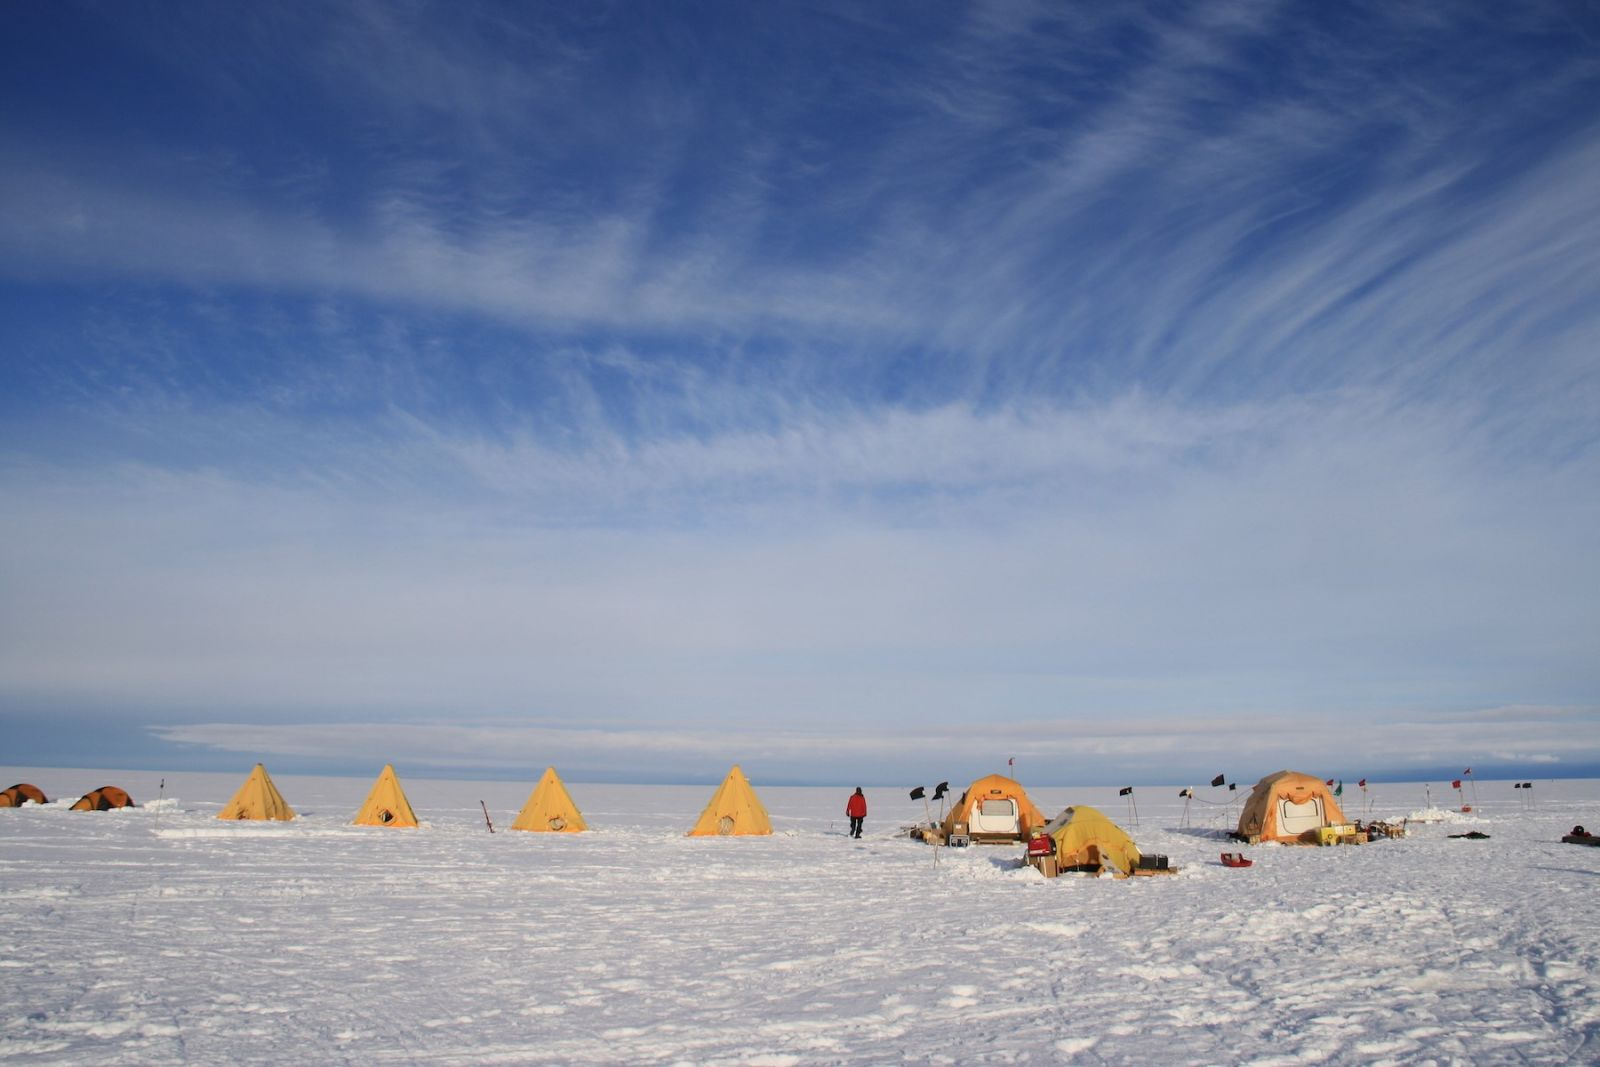 The Thwaites-Amundsen Regional Survey and Network (TARSAN) project team of the International Thwaites Glacier Collaboration set up camp to begin research on the Thwaites Ice Shelf.